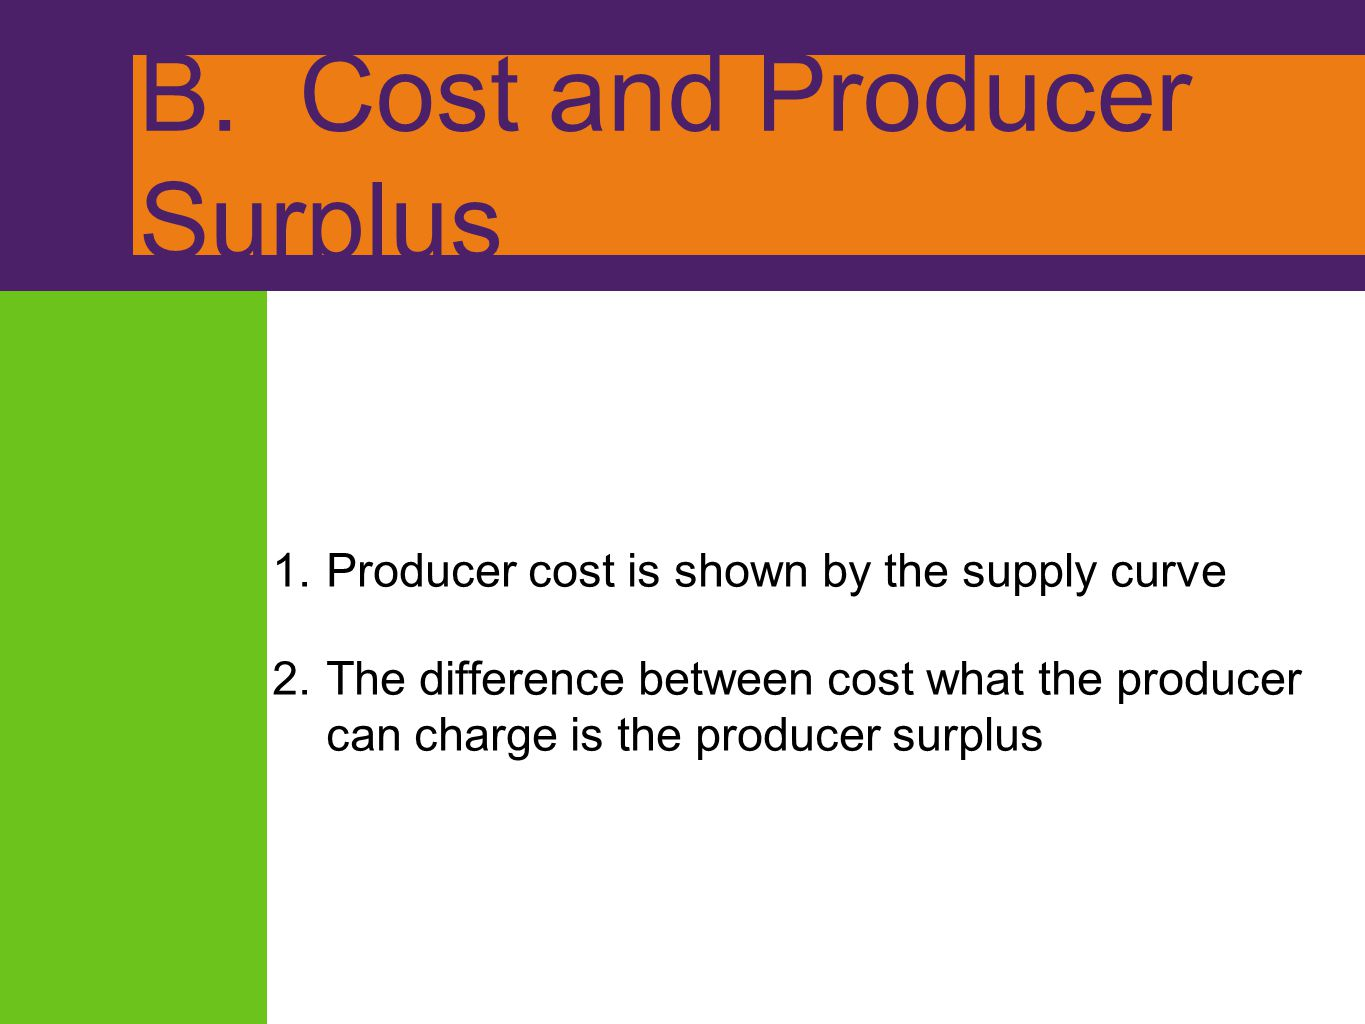 B. Cost and Producer Surplus